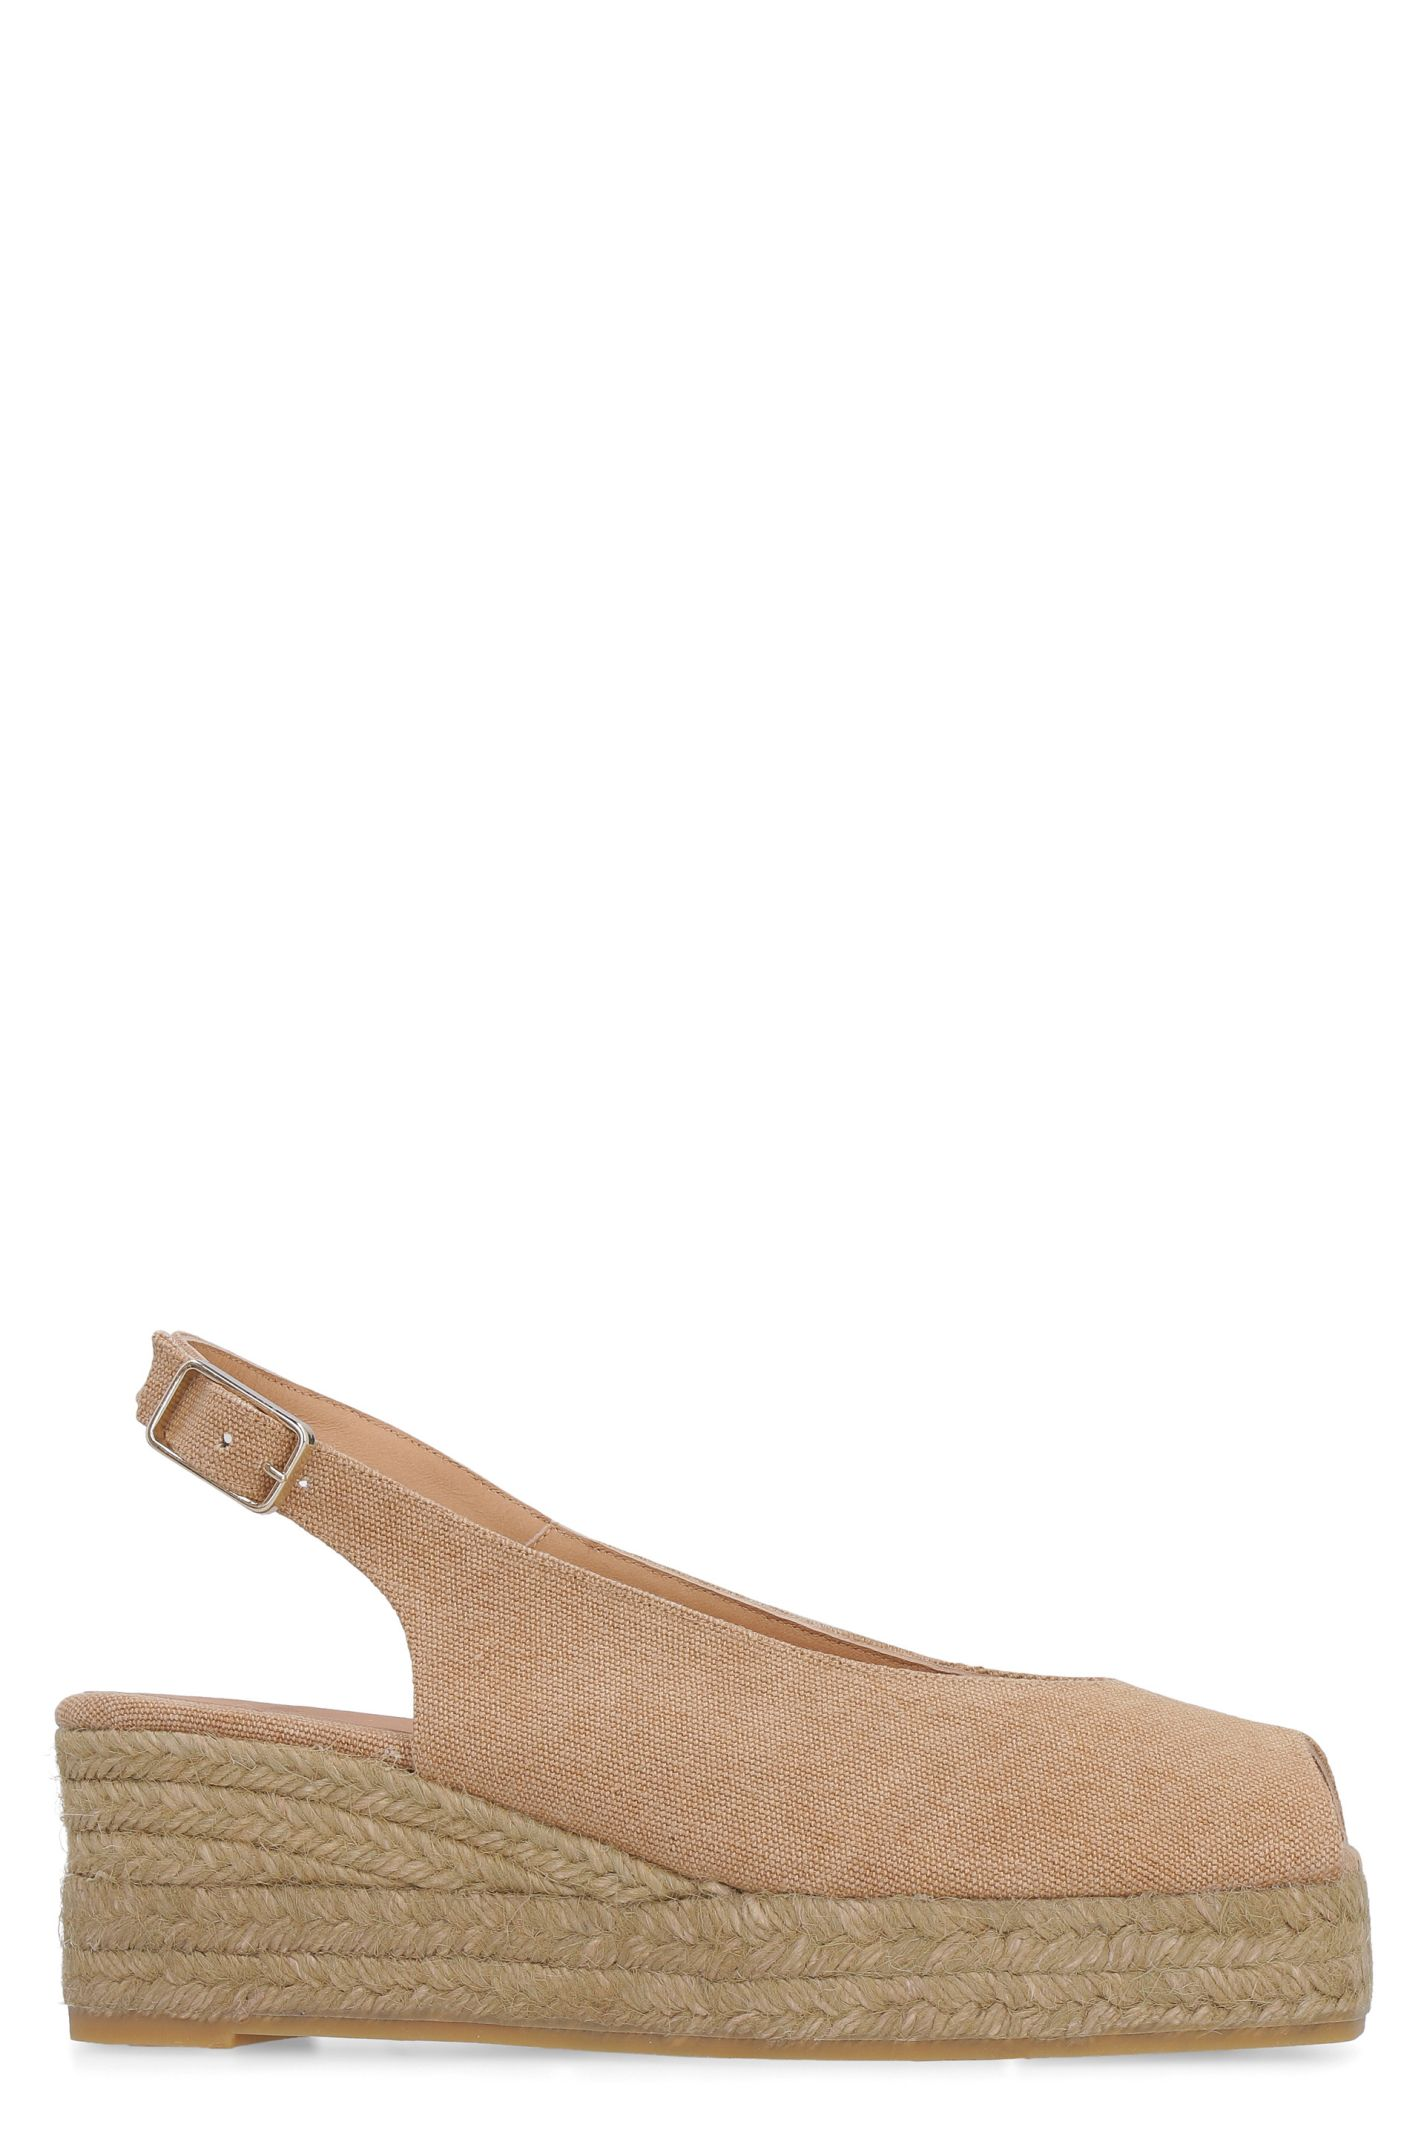 761ee8ee535 Castañer Dosalia Canvas Wedge Espadrilles | £73.51 | Port